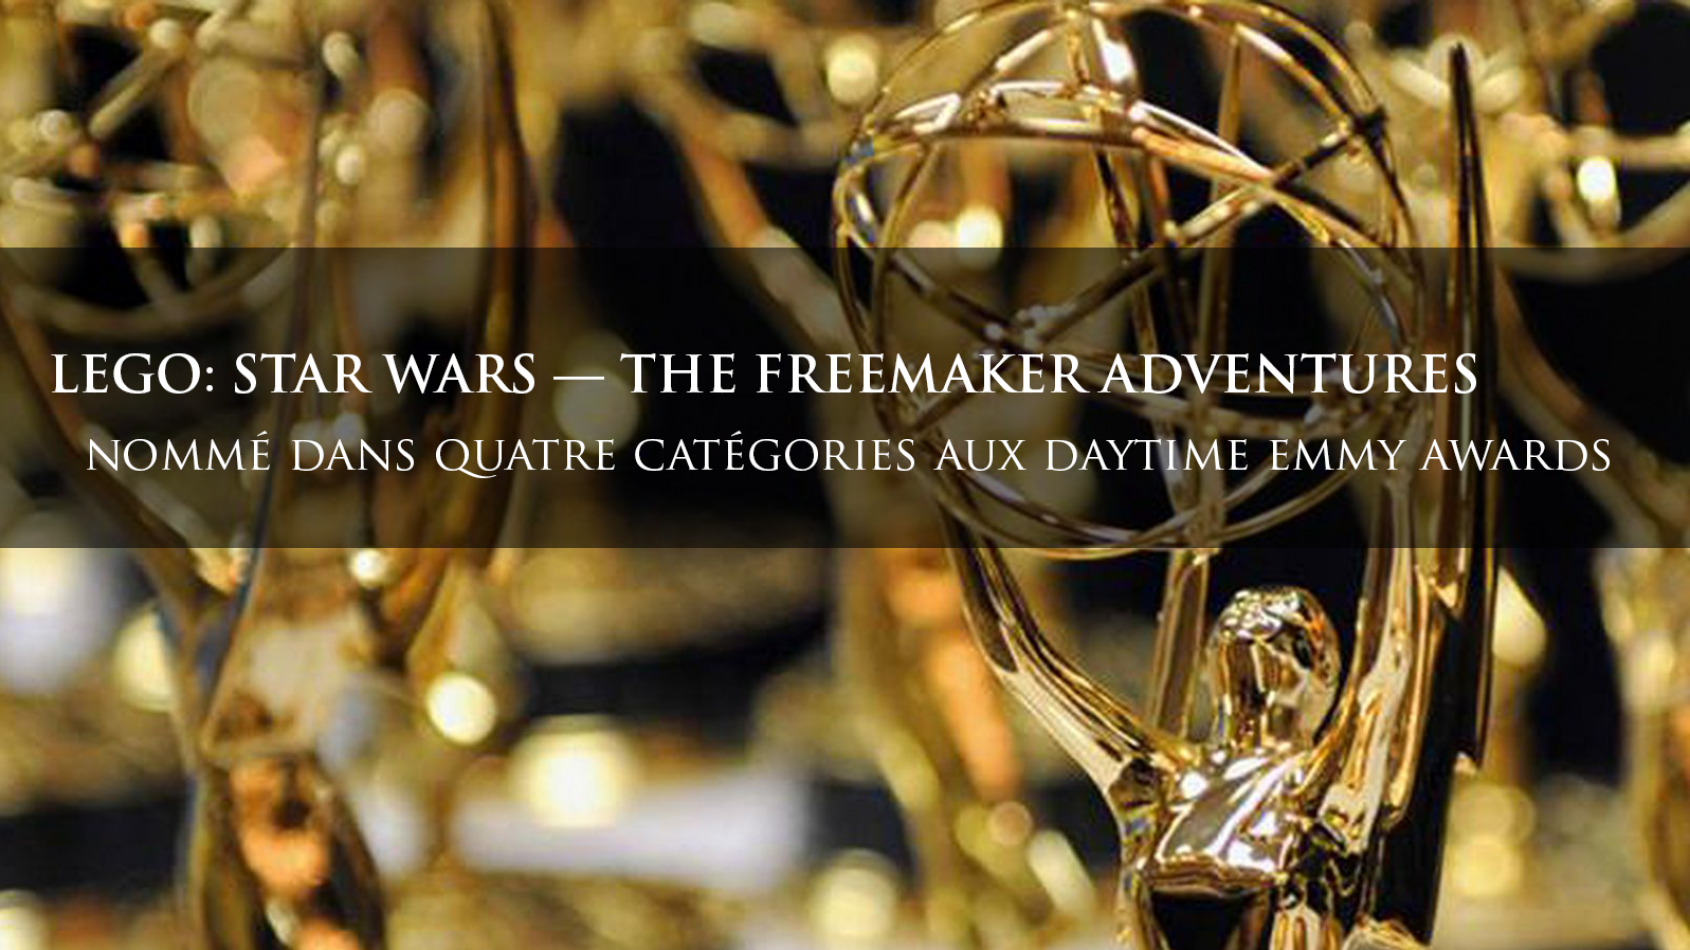 LEGO Star Wars: The Freemaker Adventures nommé aux Daytime Emmy Awards